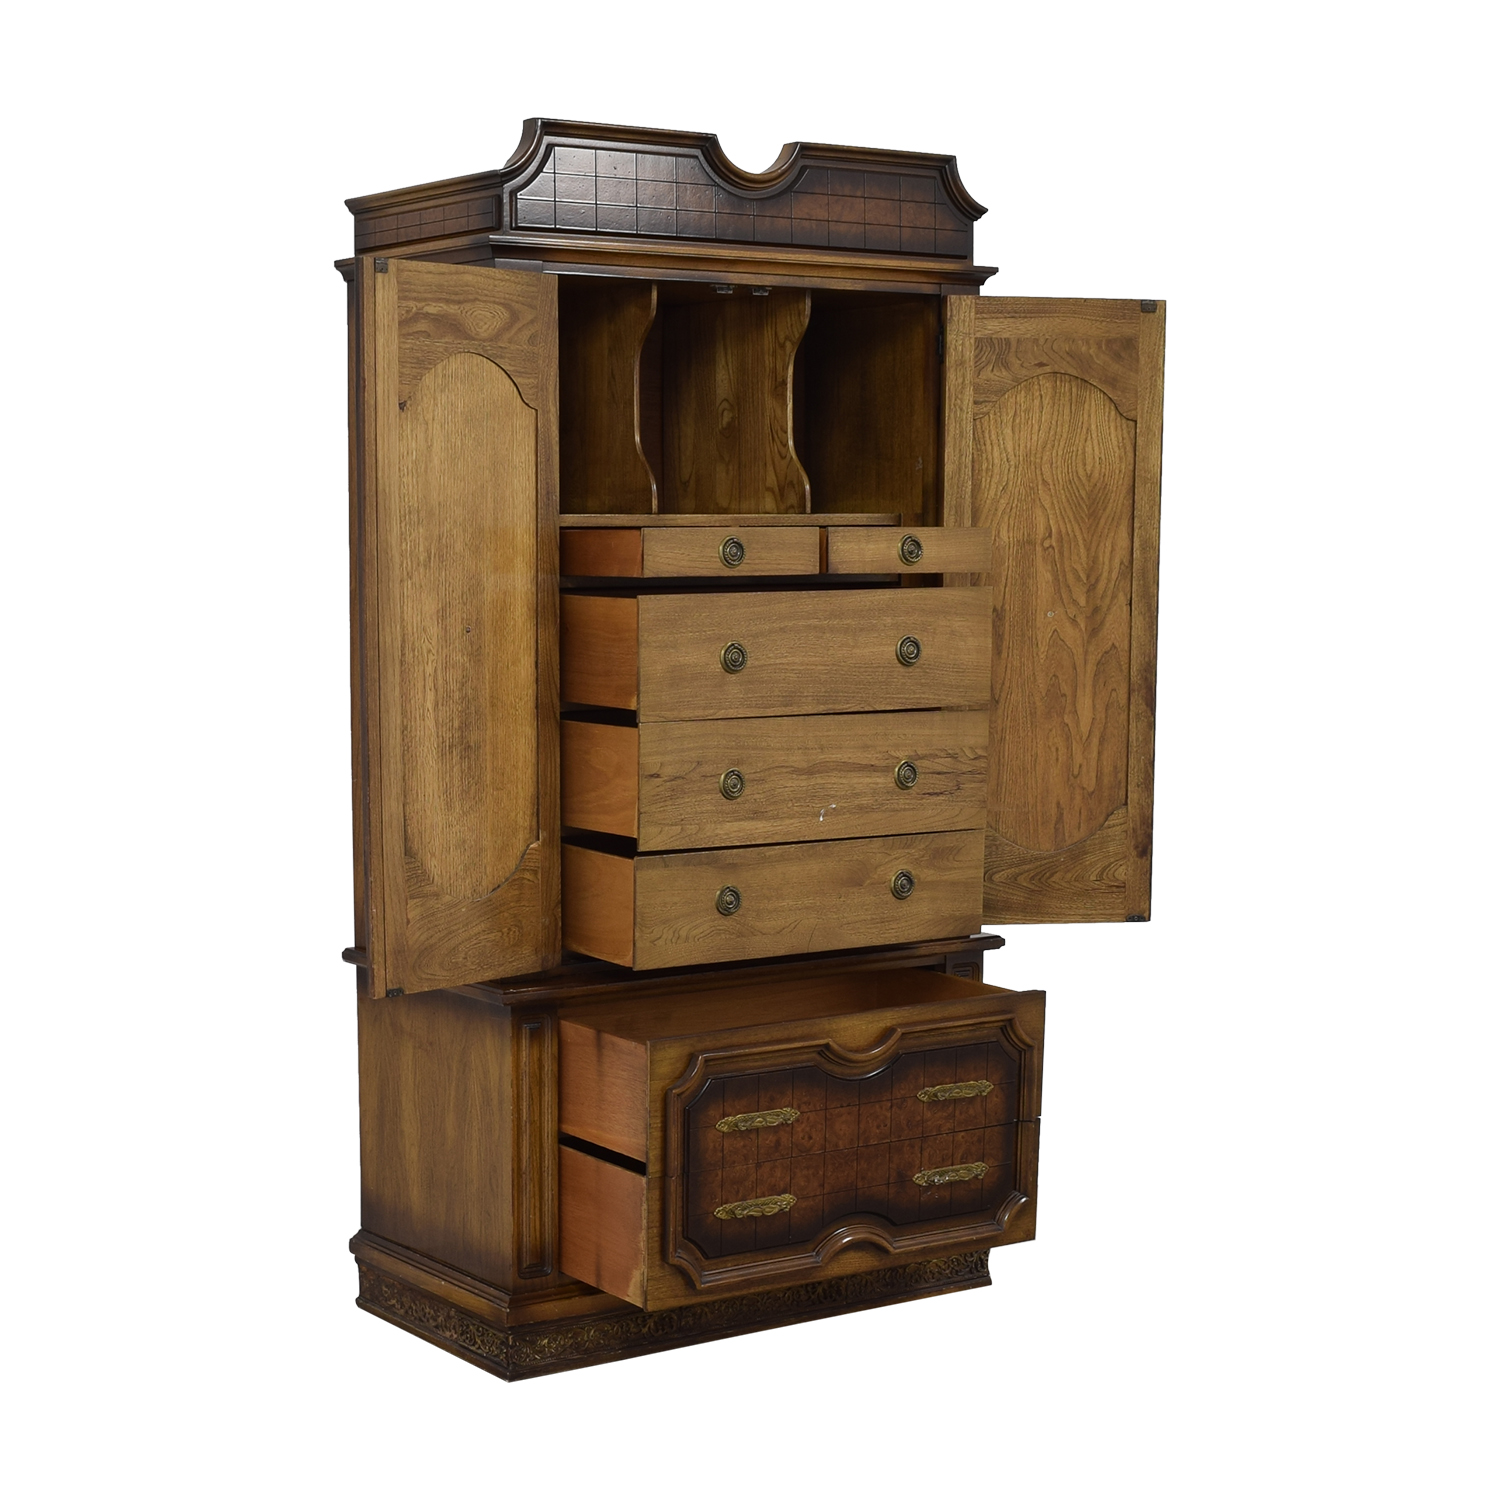 Seven-Drawer Wood Armoire used